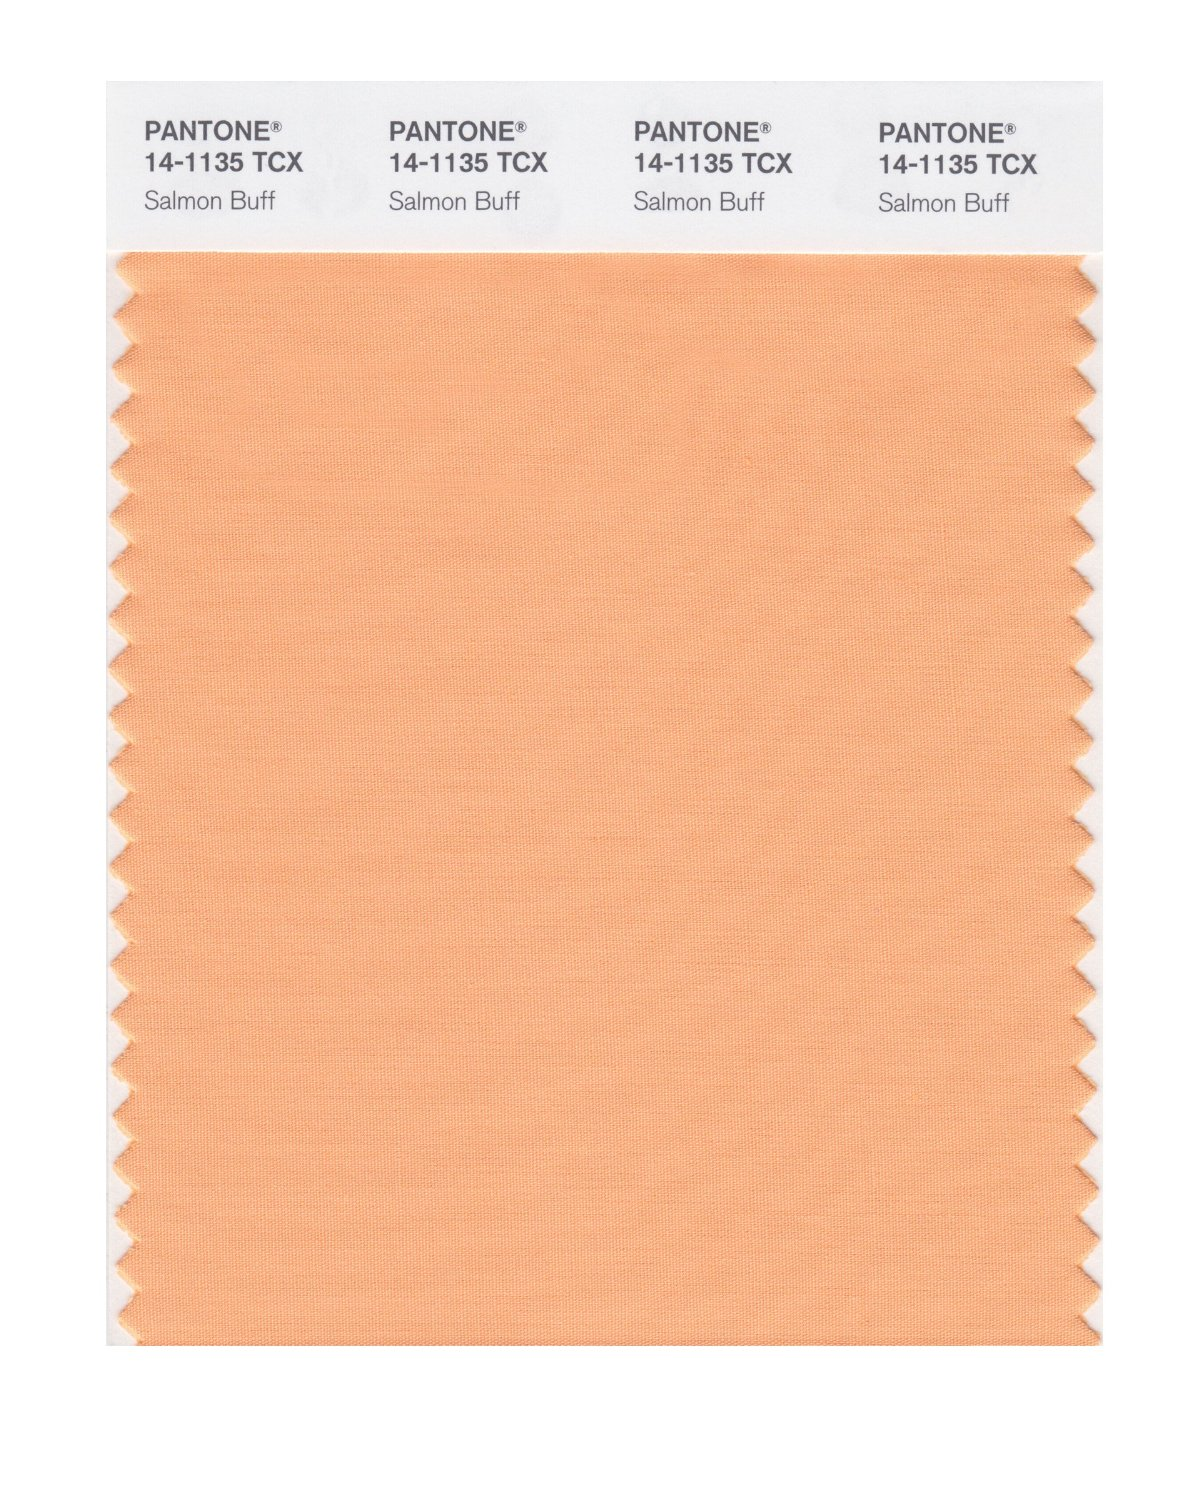 Pantone Smart Swatch 14-1135 Salmon Buff